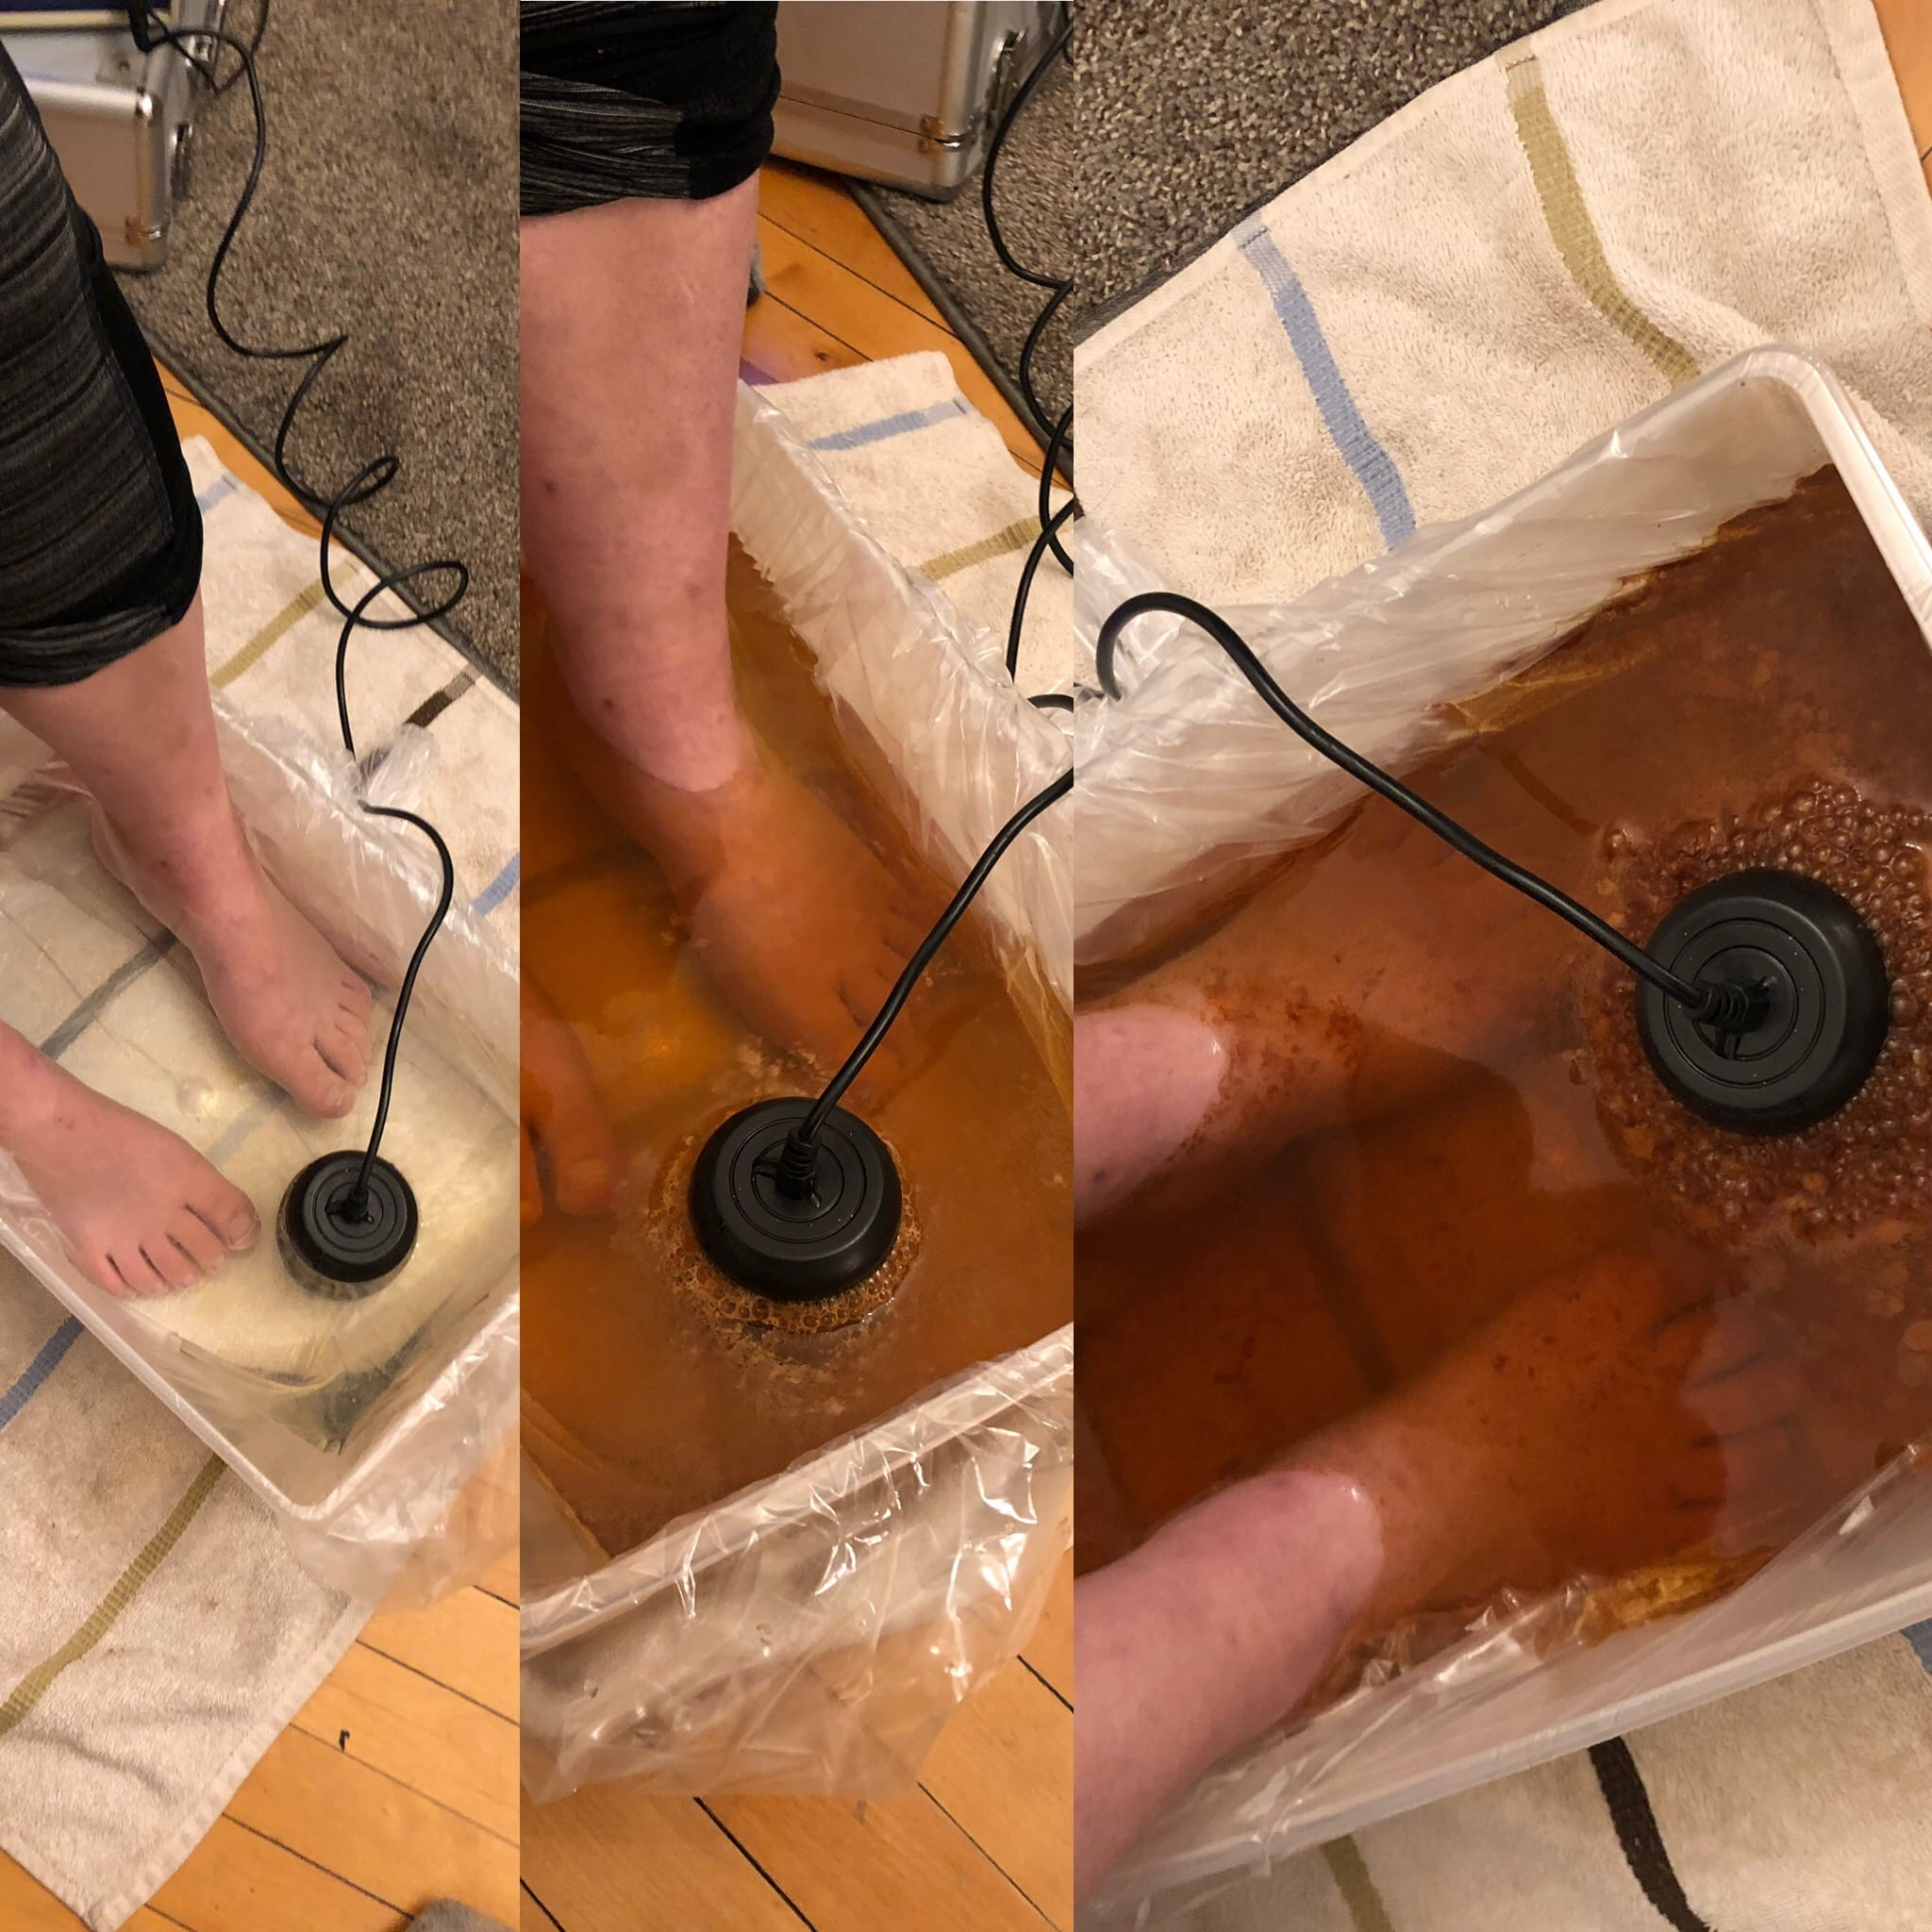 pic showing three stages of Ionic Foot detox